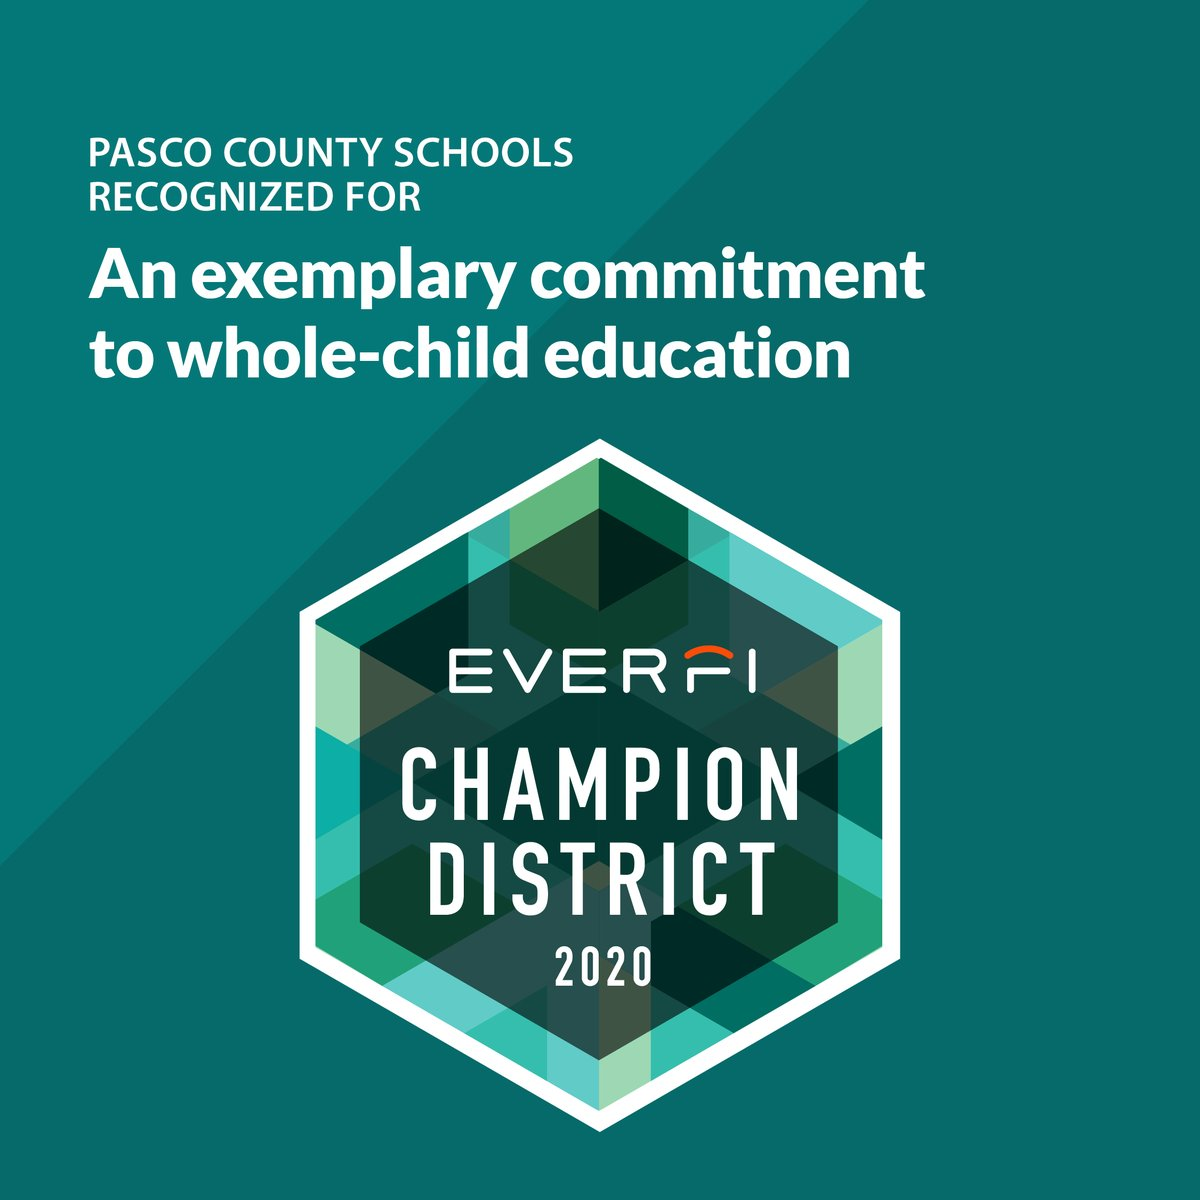 Pasco County Schools has earned the @EVERFI Champion Seal, awarded annually to North American school districts who've made an exemplary commitment to whole-child education.